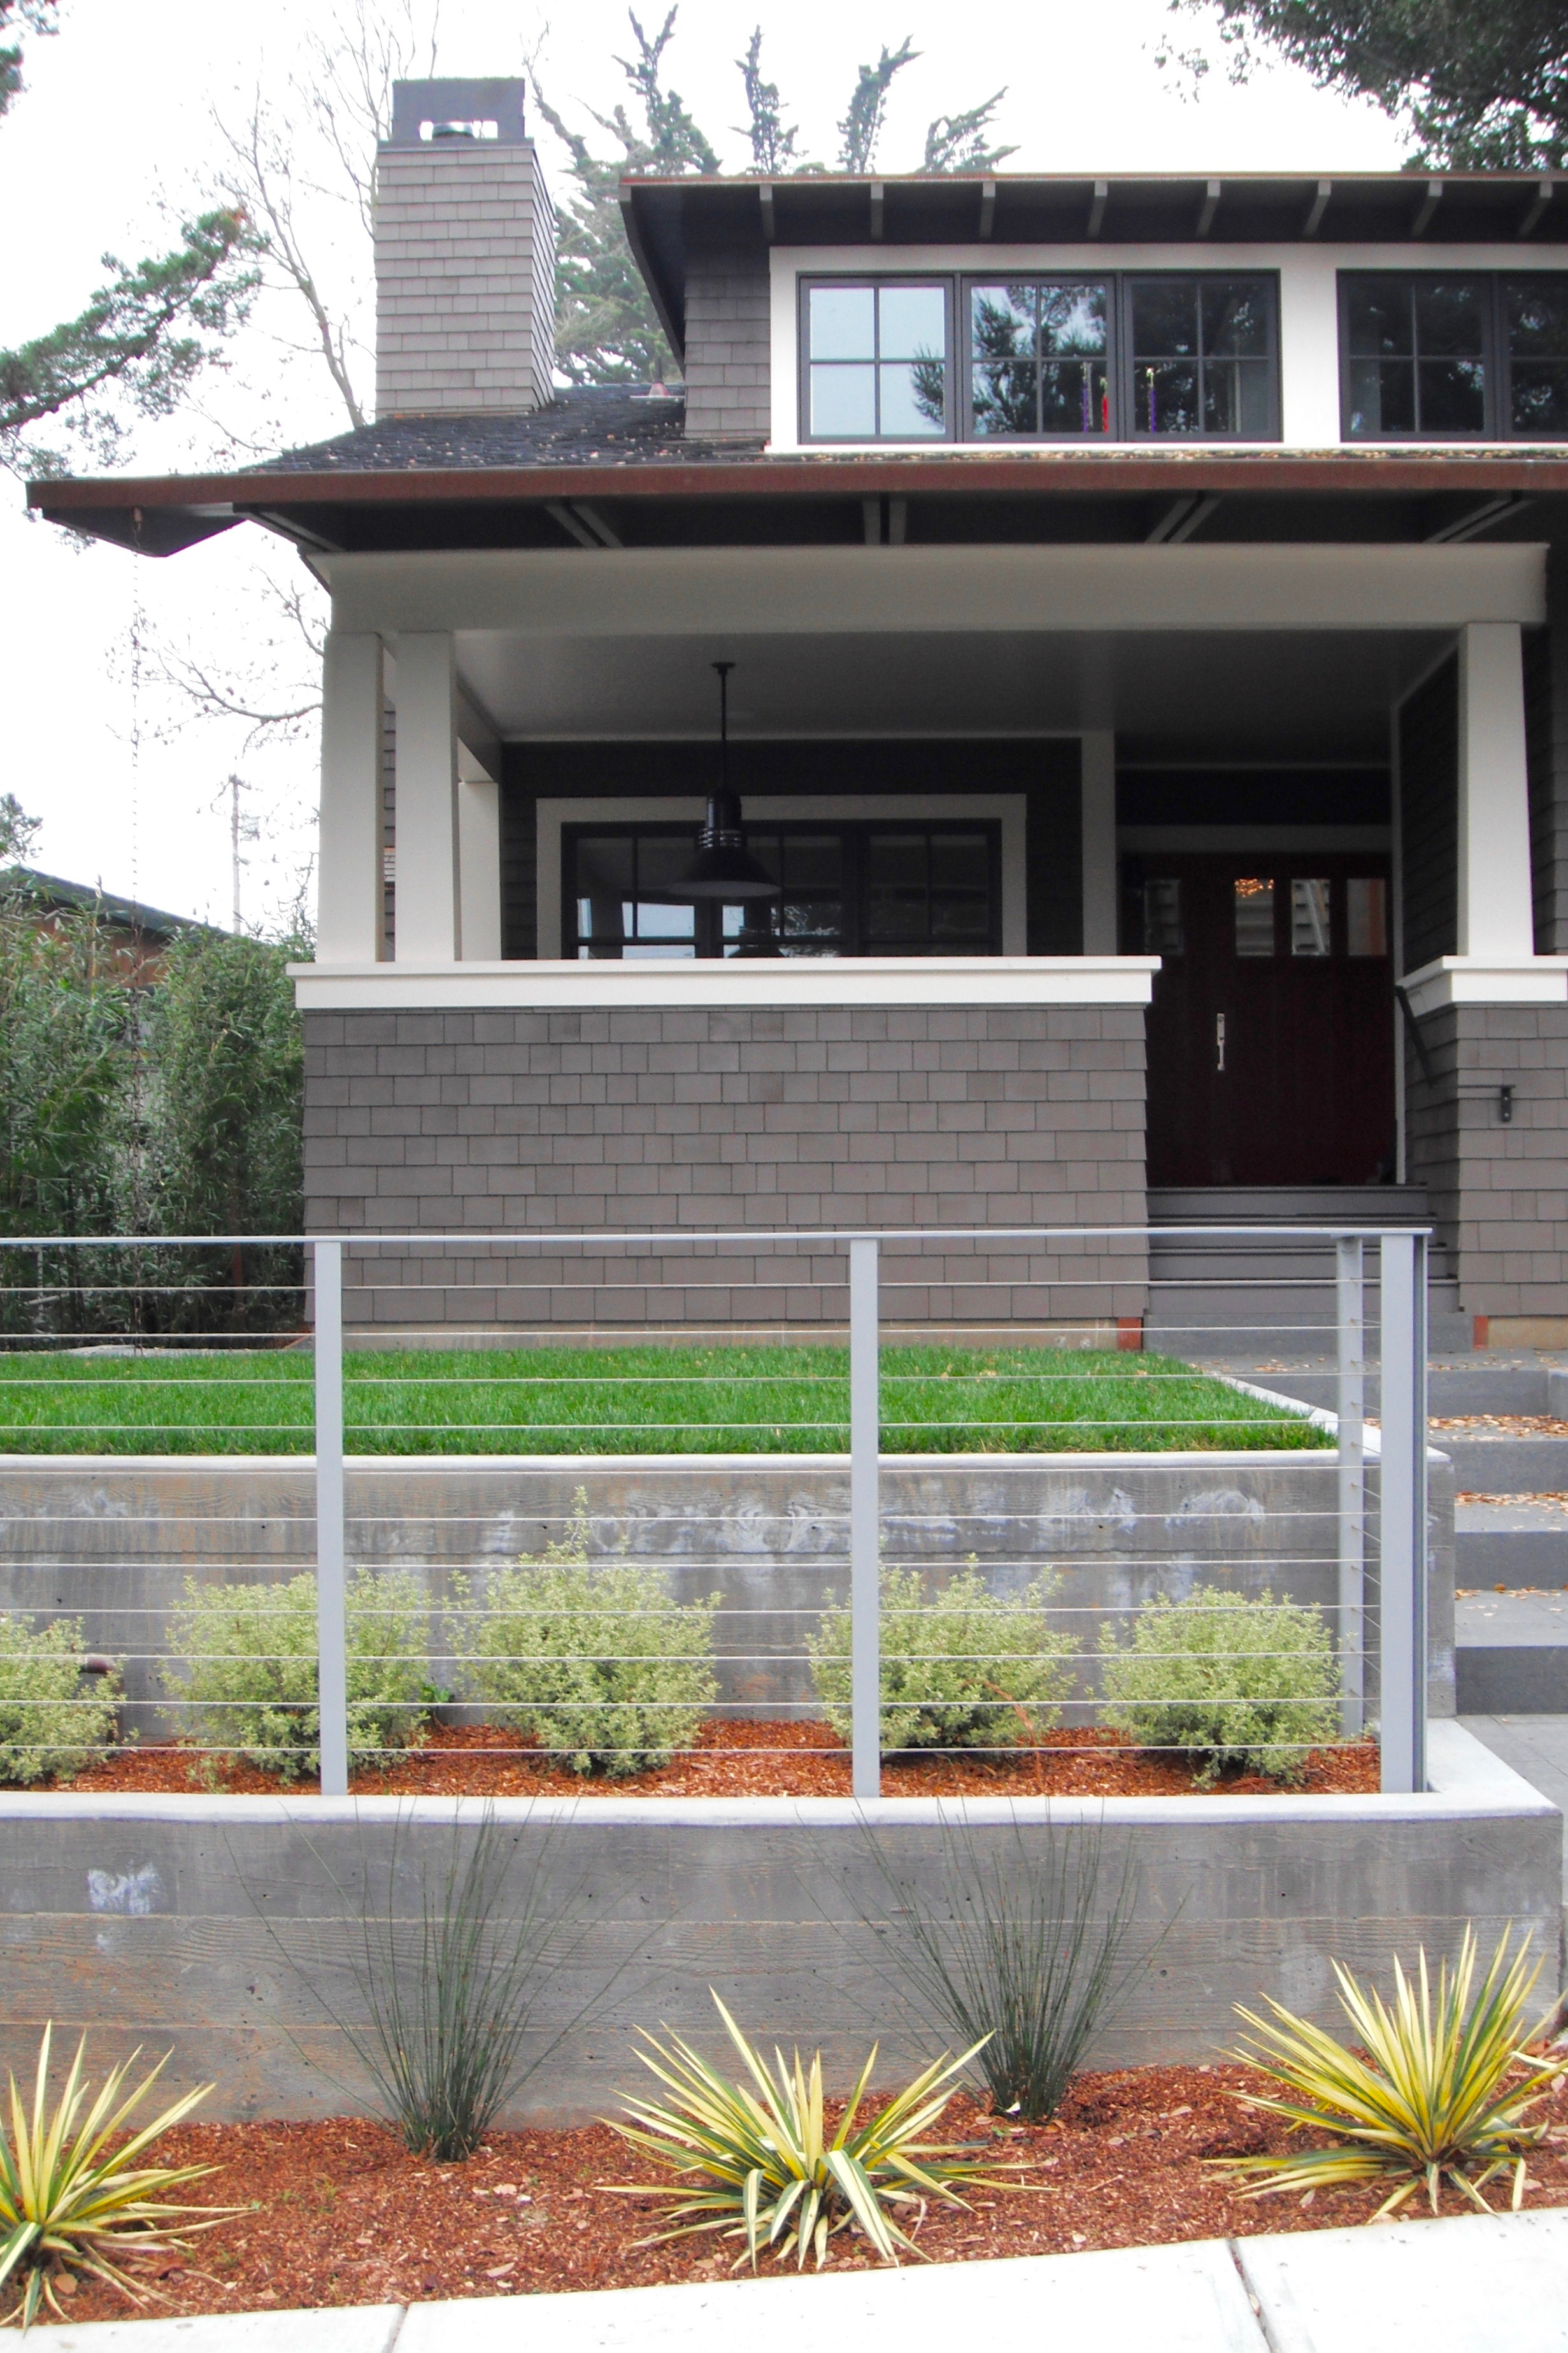 STEEL CABLE RAILING LANDSCAPE